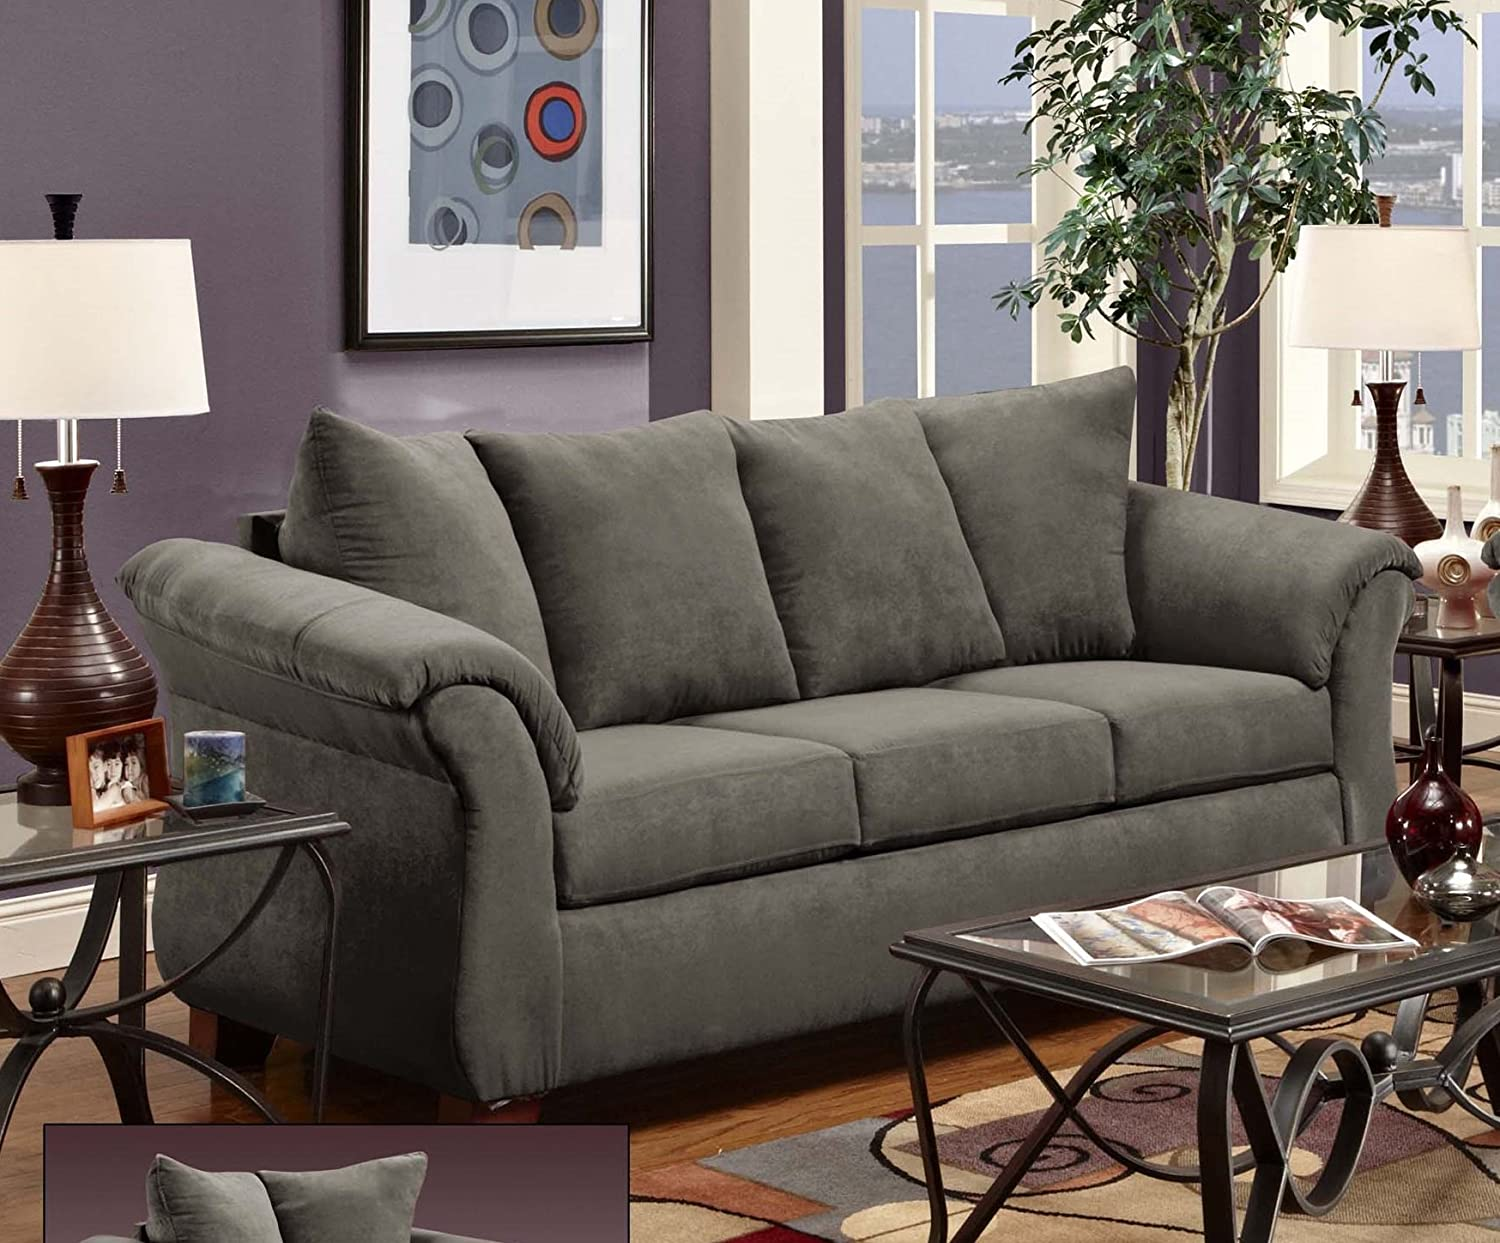 Chelsea Home Furniture Kiersten Sofa - Flatsuede Graphite